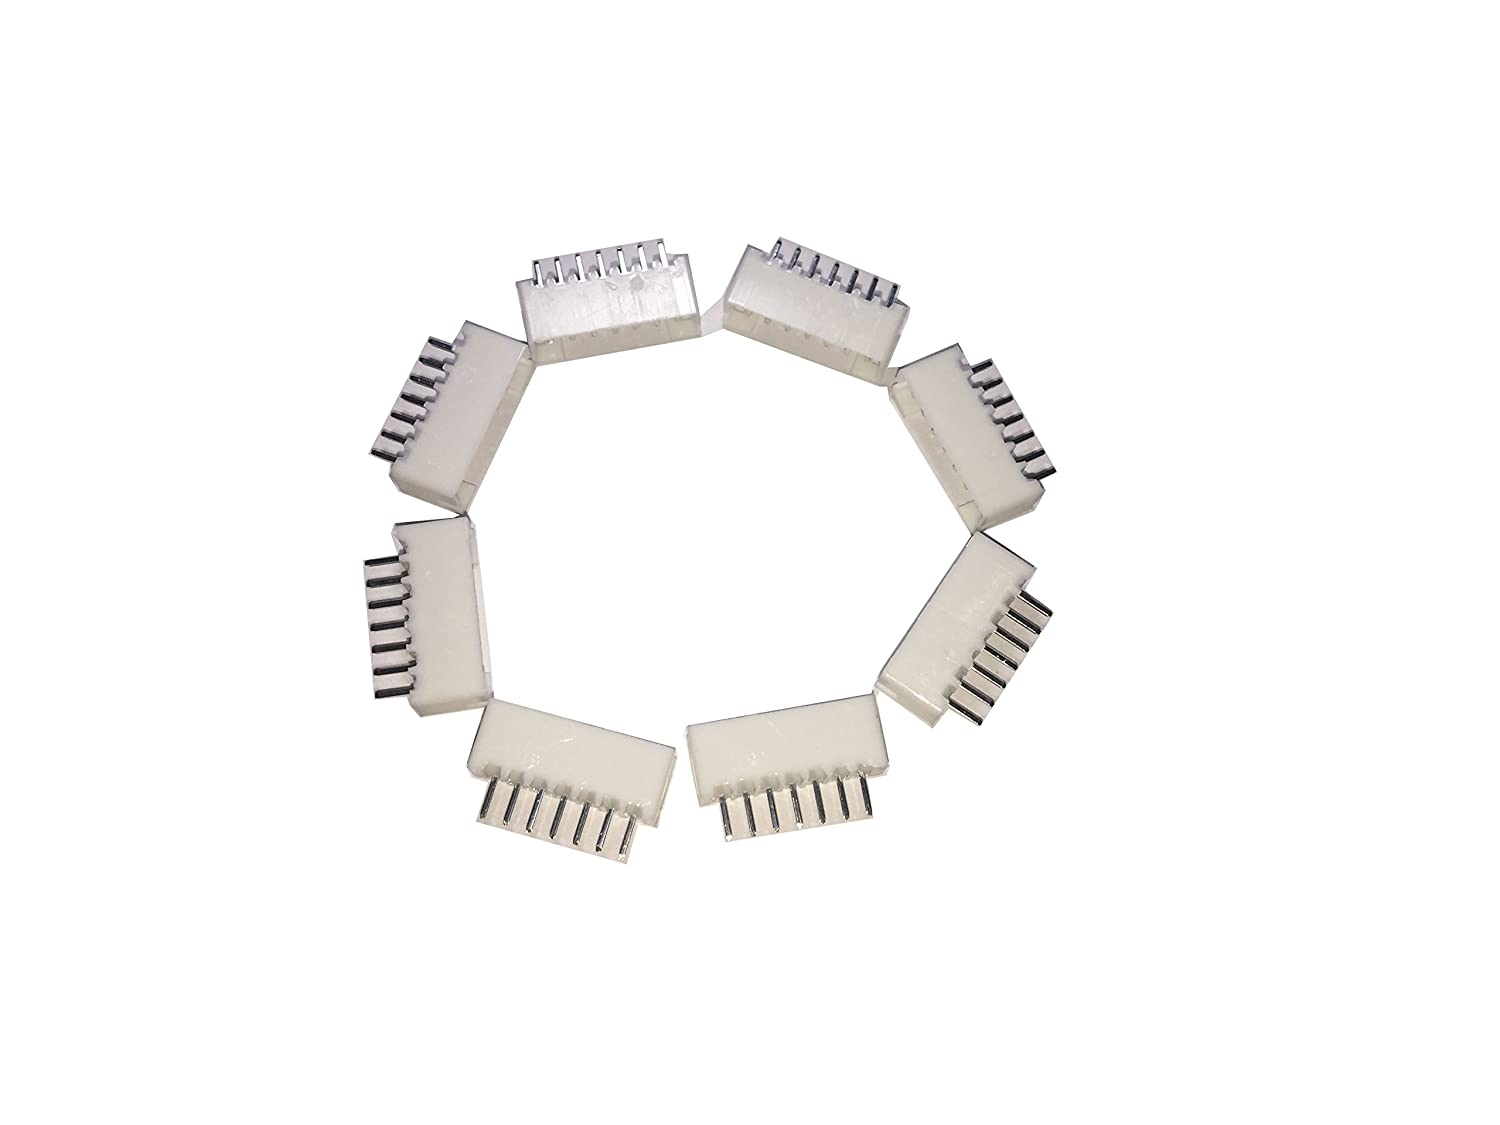 /& JST PH 7 PIN Male Connector 8 PCS LATTECH 8 PCS 7 PIN JST PH Female Connector on One Side with Electric Wire 1007 26 AWG Total Length:100MM